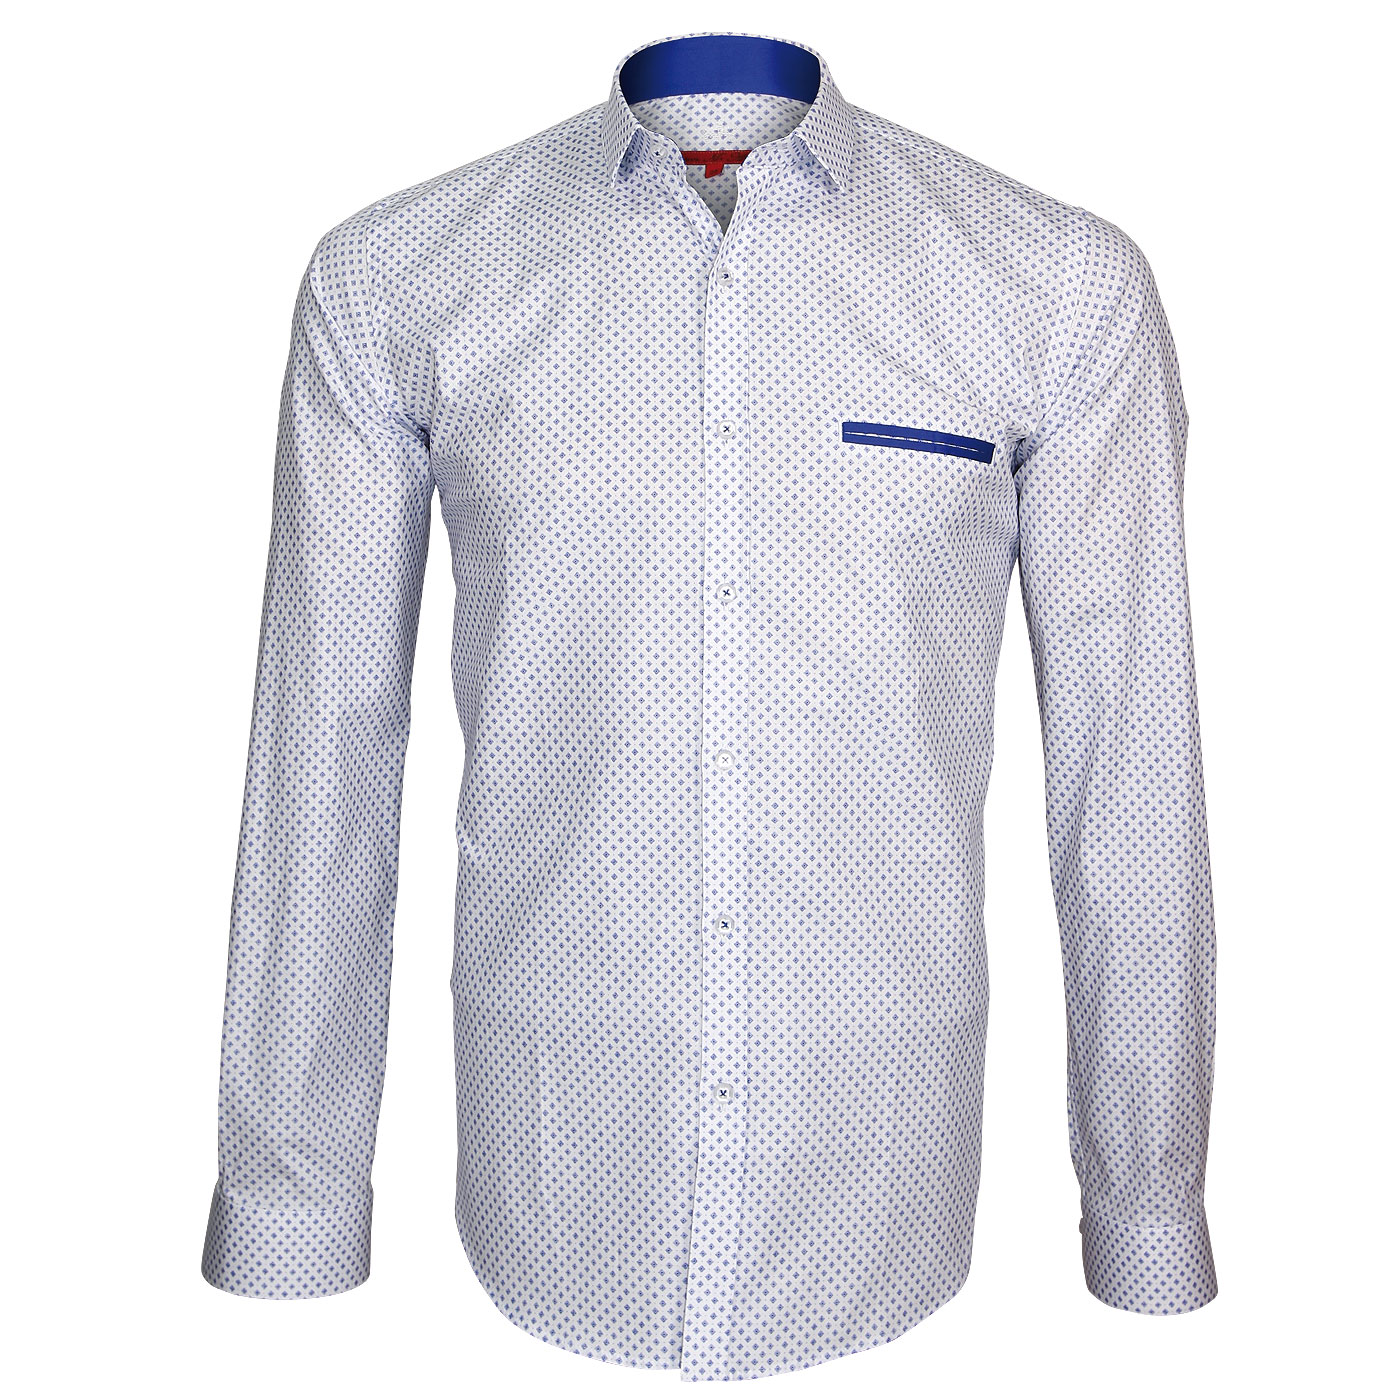 Original Fancy Shirt Exclusive Models on Webmenshirts